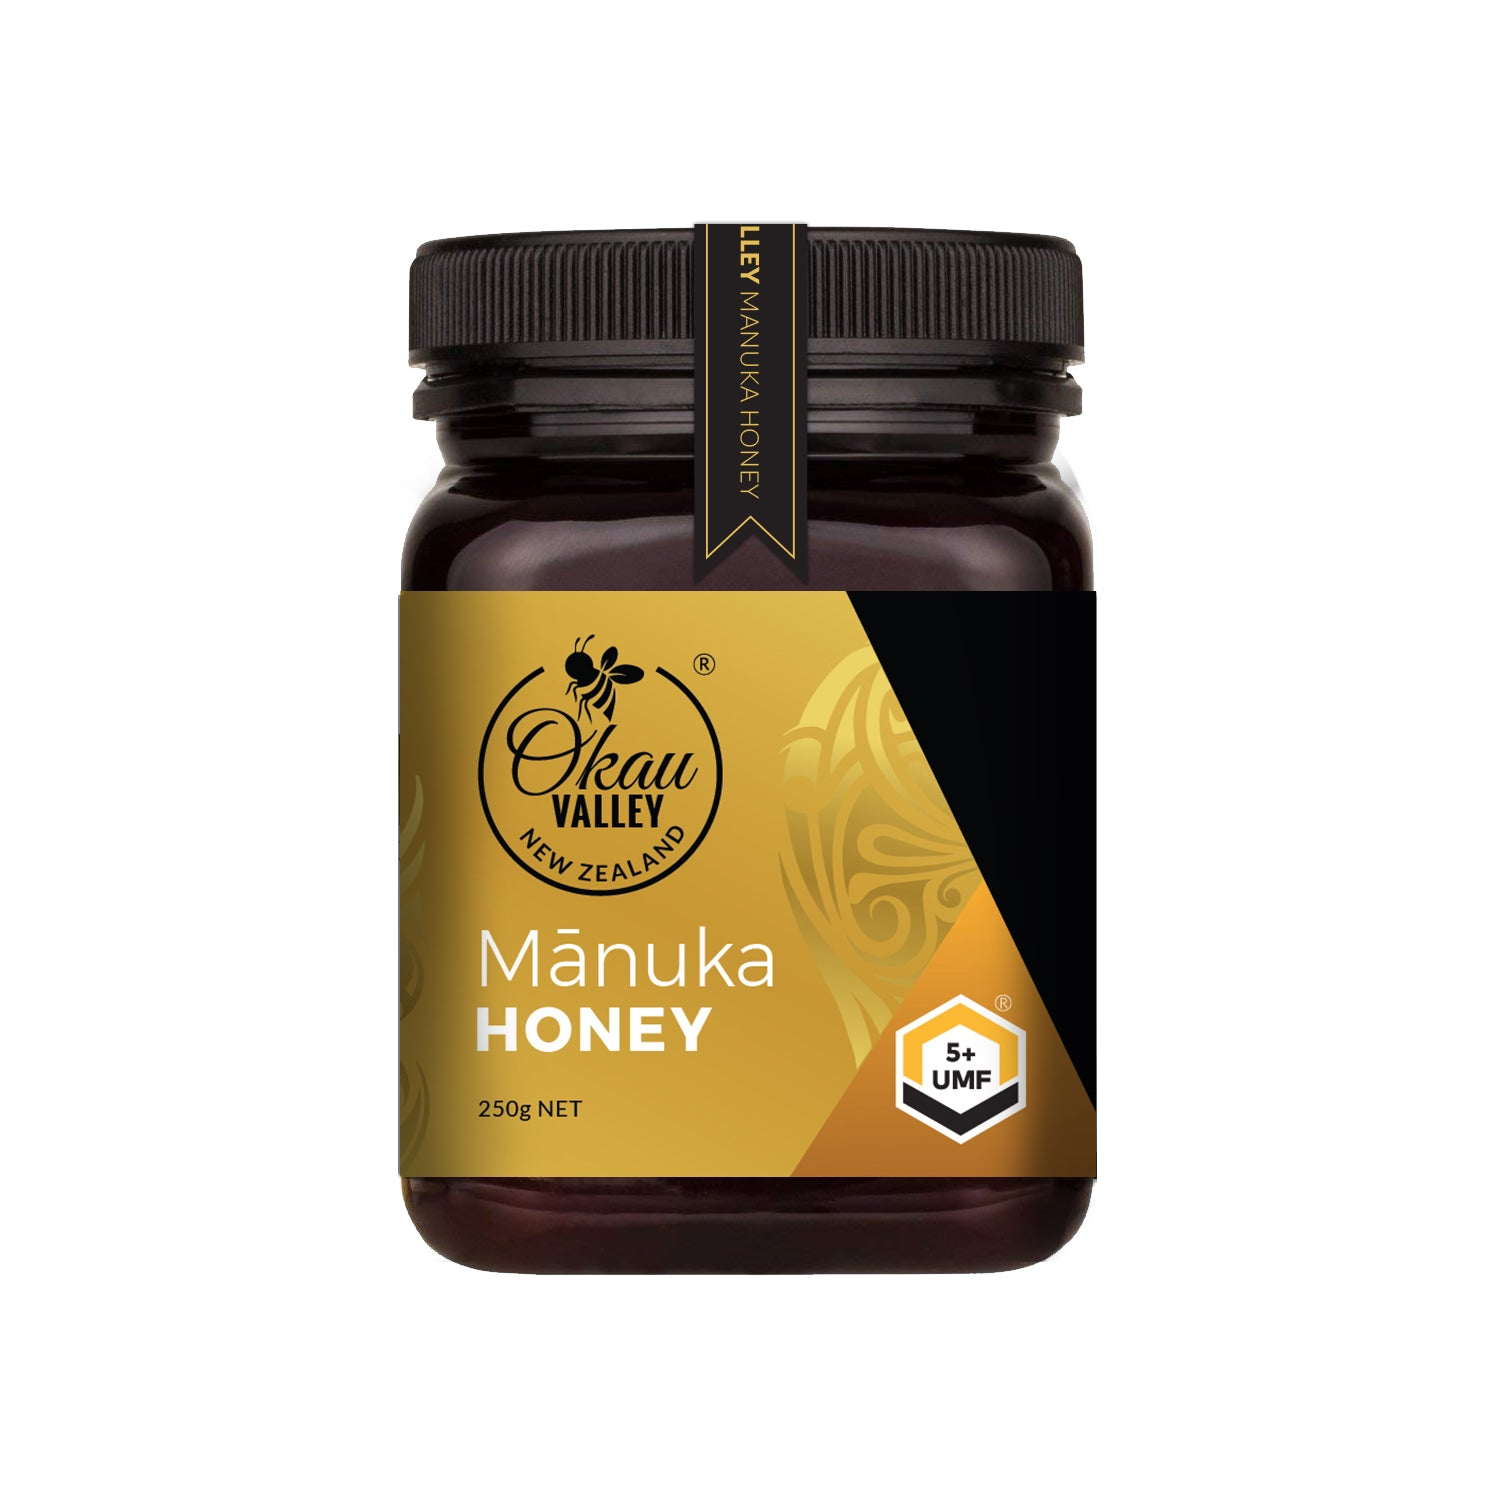 Okau Valley UMF 5+ Mānuka Honey